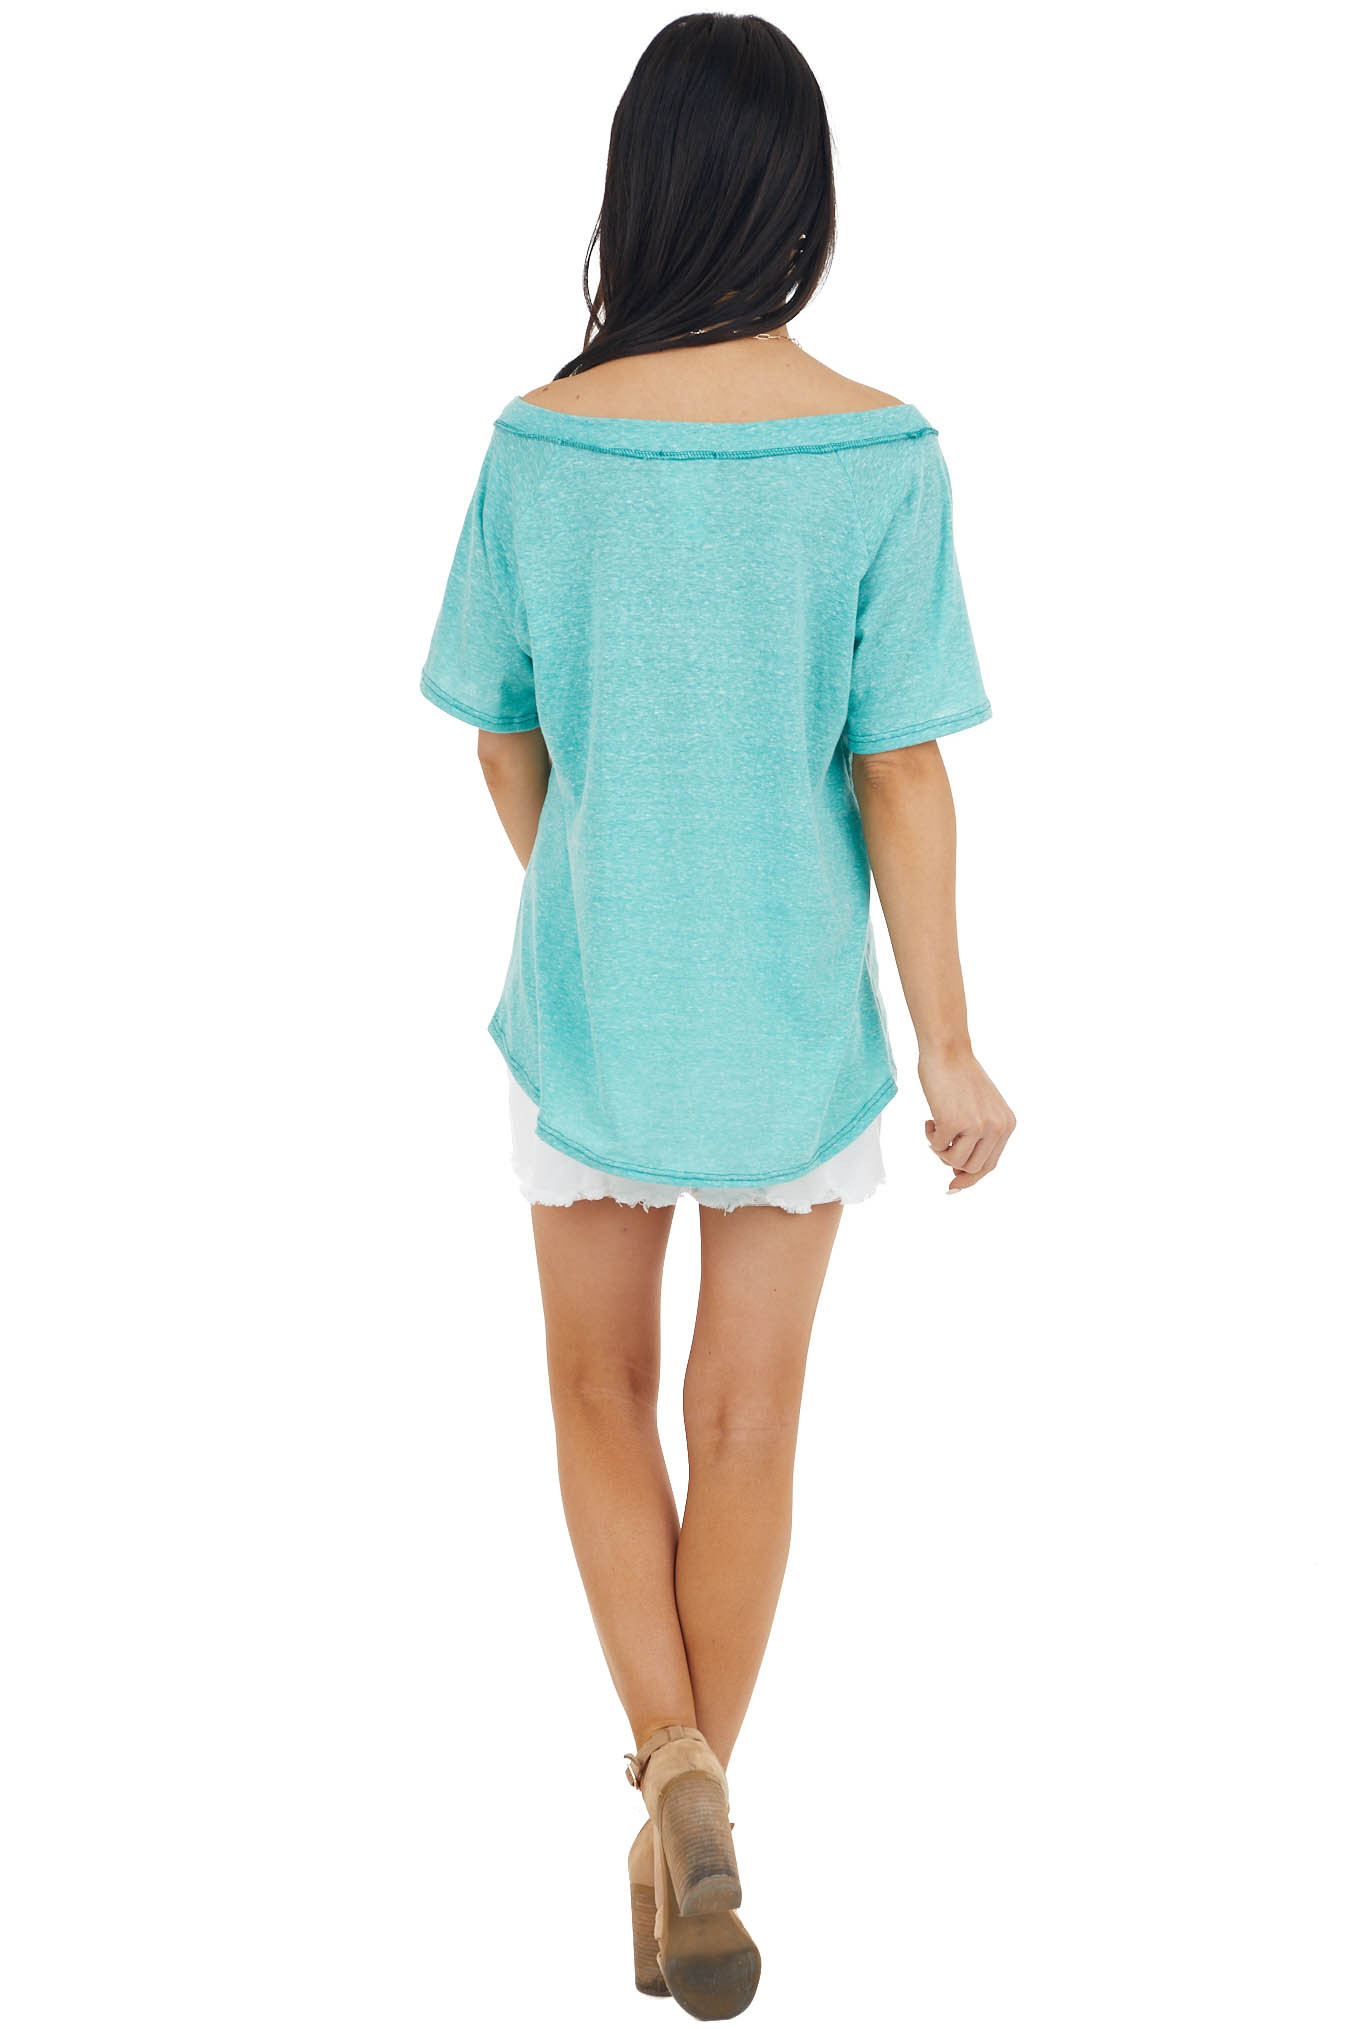 Jade Two Tone Short Sleeve Knit Top with Raw Details